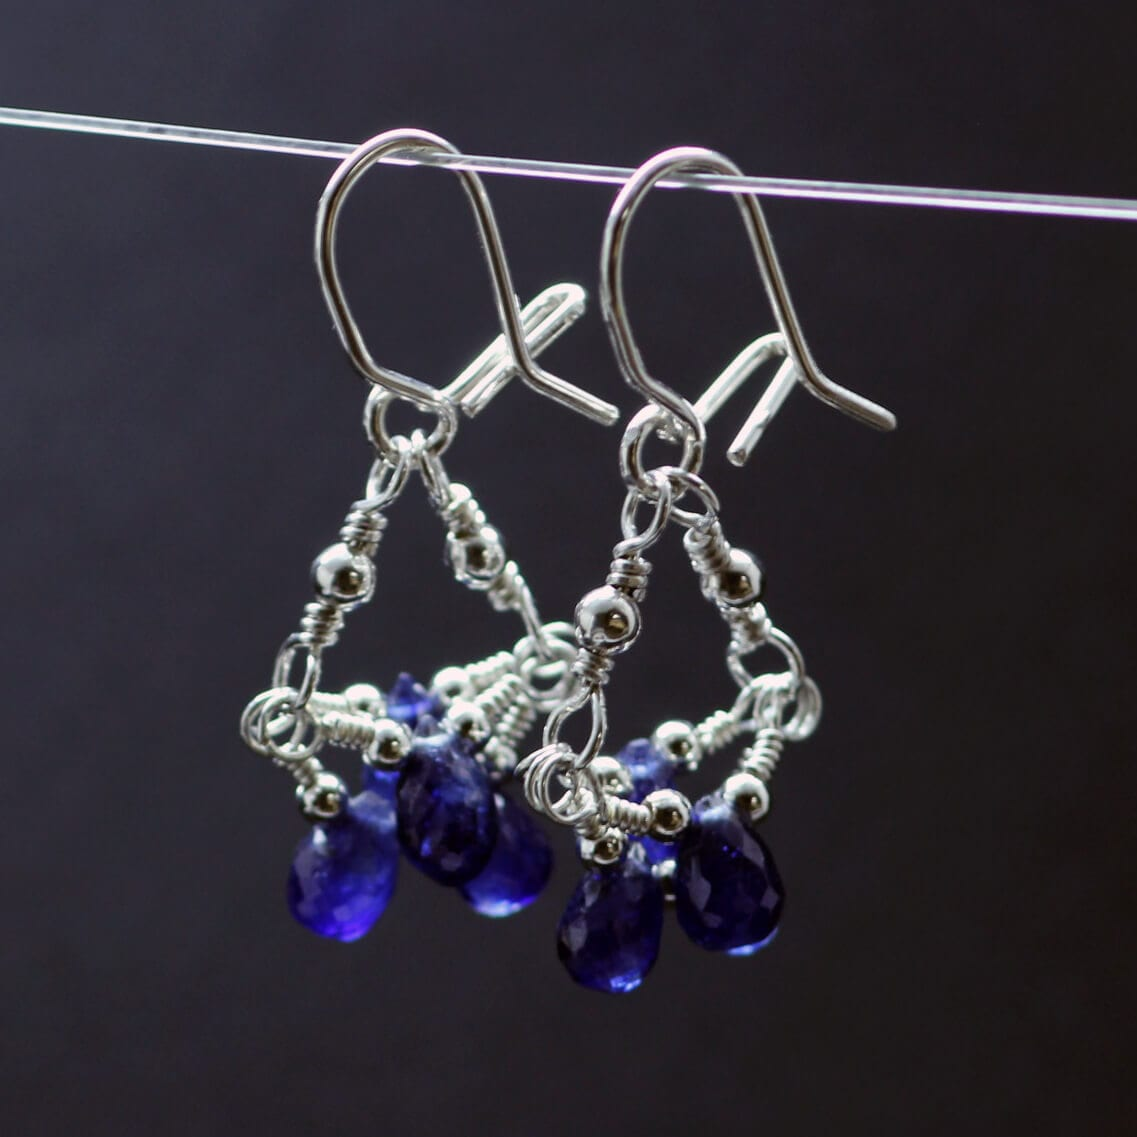 Handmade Blue sapphire briolette gemstone silver droplet earrings